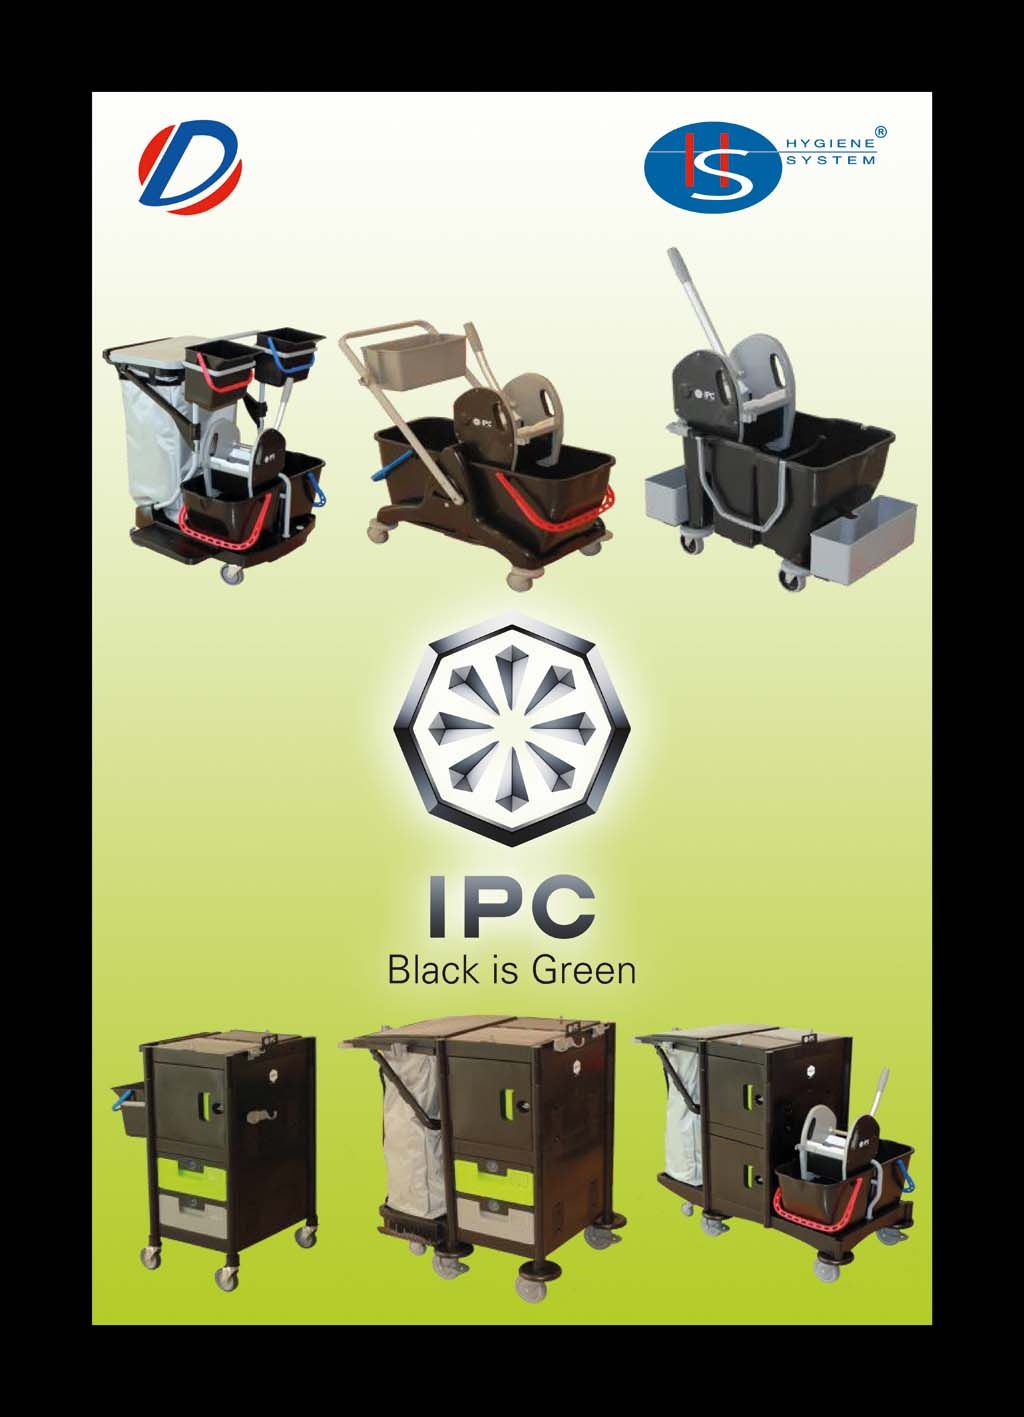 Ipc Black is Green Range